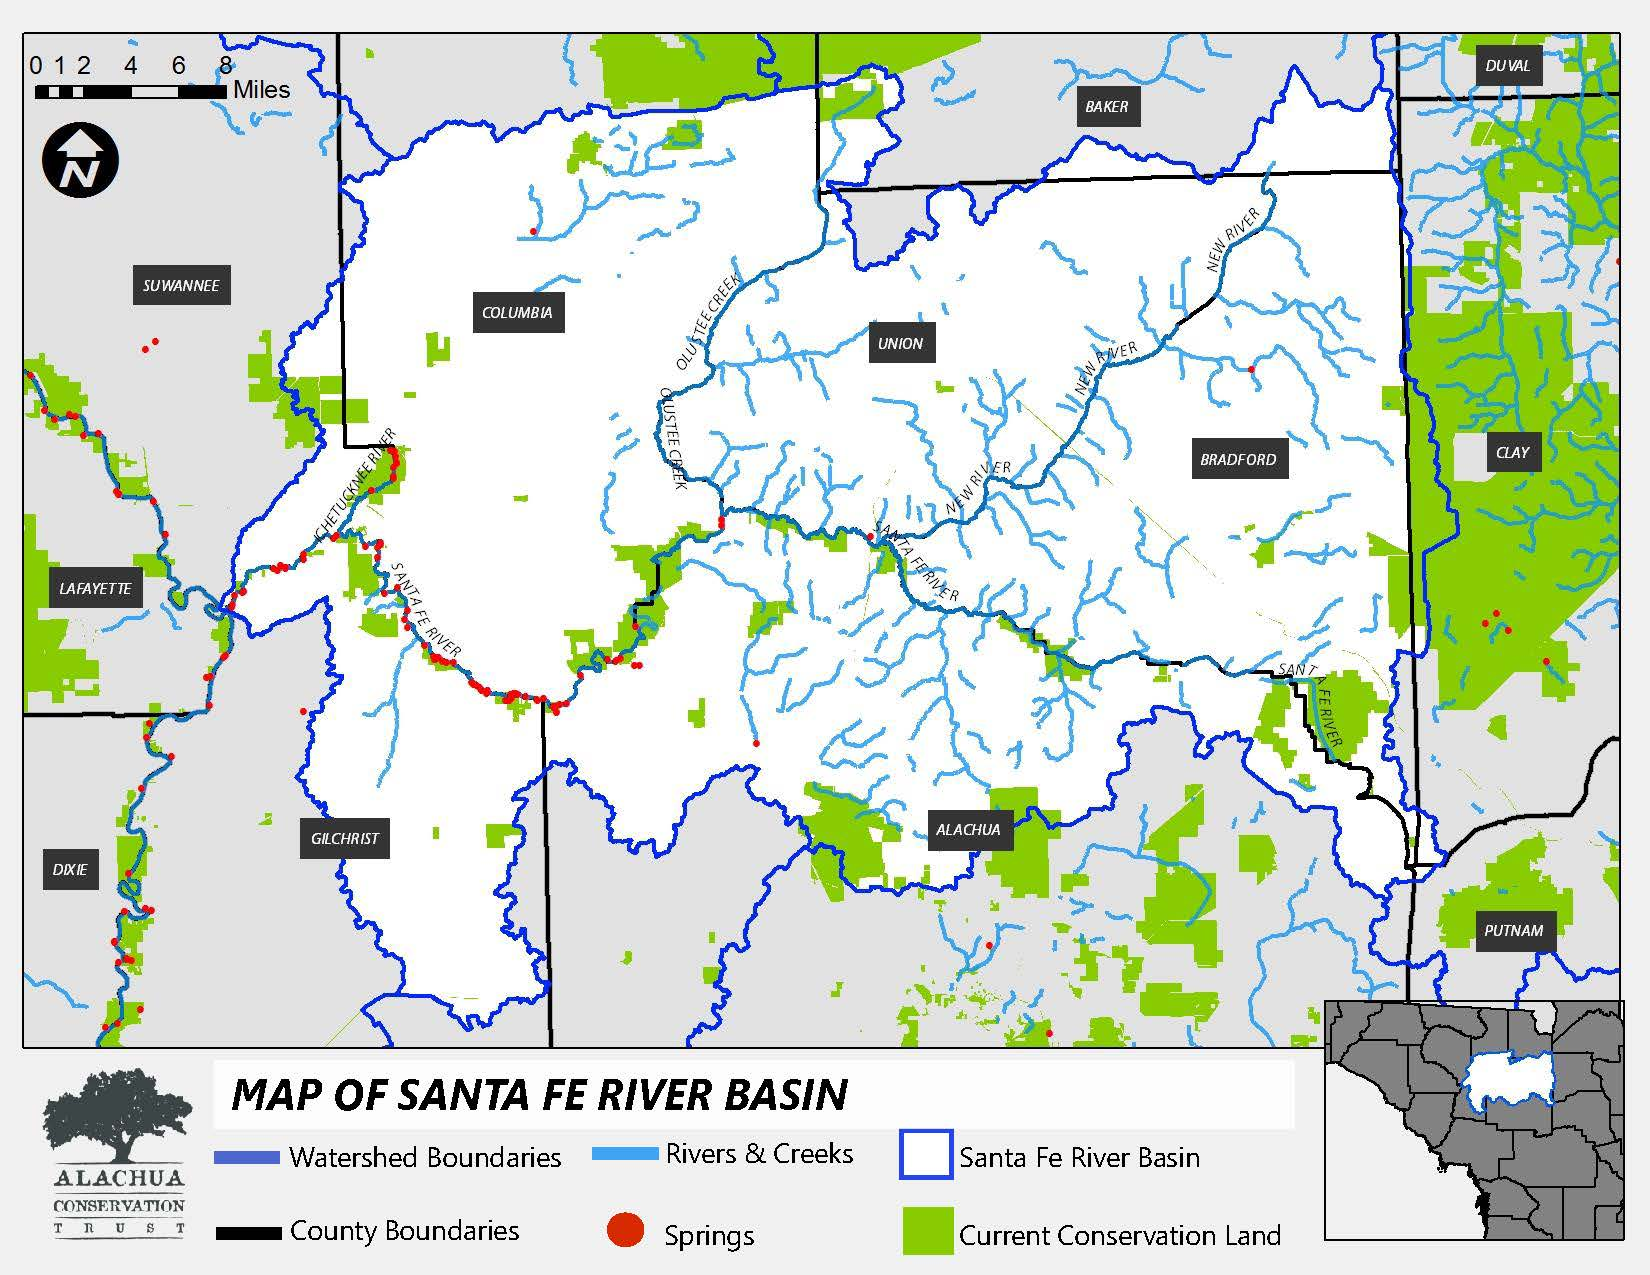 Click here to see the Santa Fe River Basin Boundary